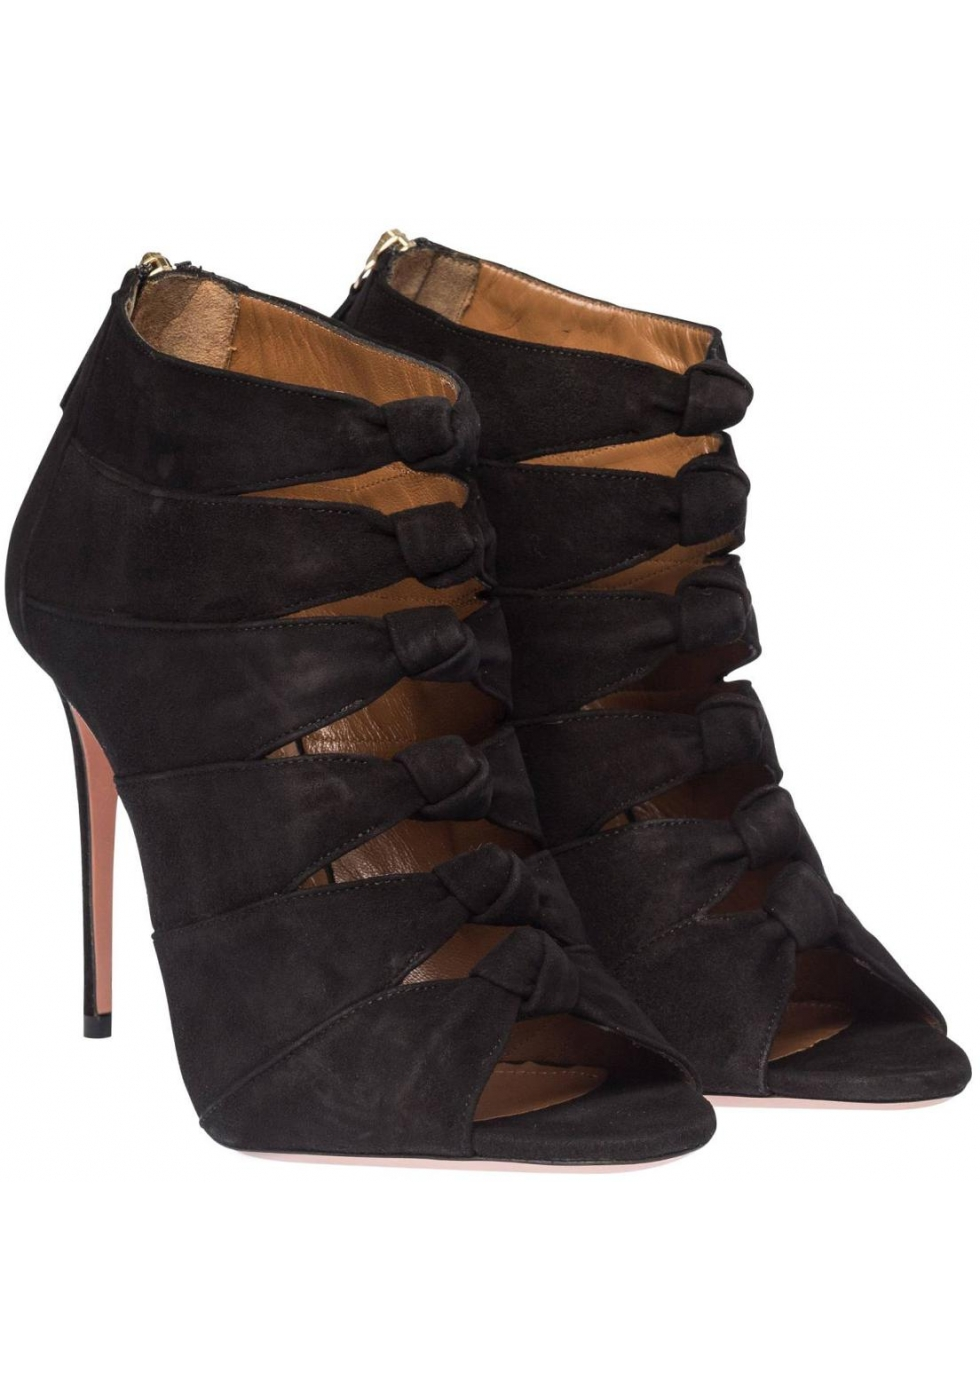 fcf3861ff7d Aquazzura high heel sandals in black Suede leather - Italian Boutique